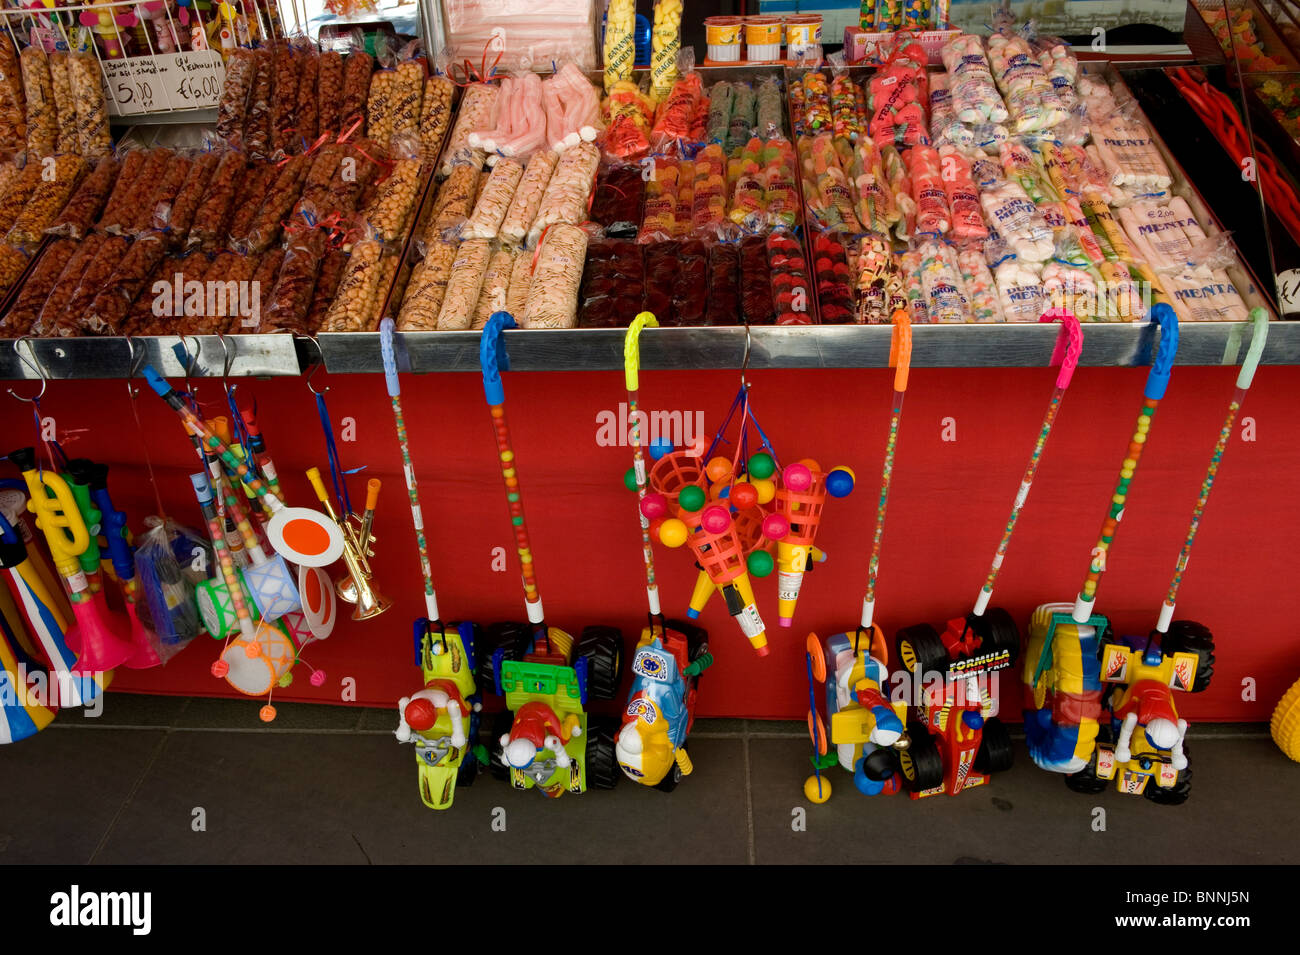 Italy. Tuscany. Colle di val d'Elsa. The weekly market. Sweets, candy. - Stock Image